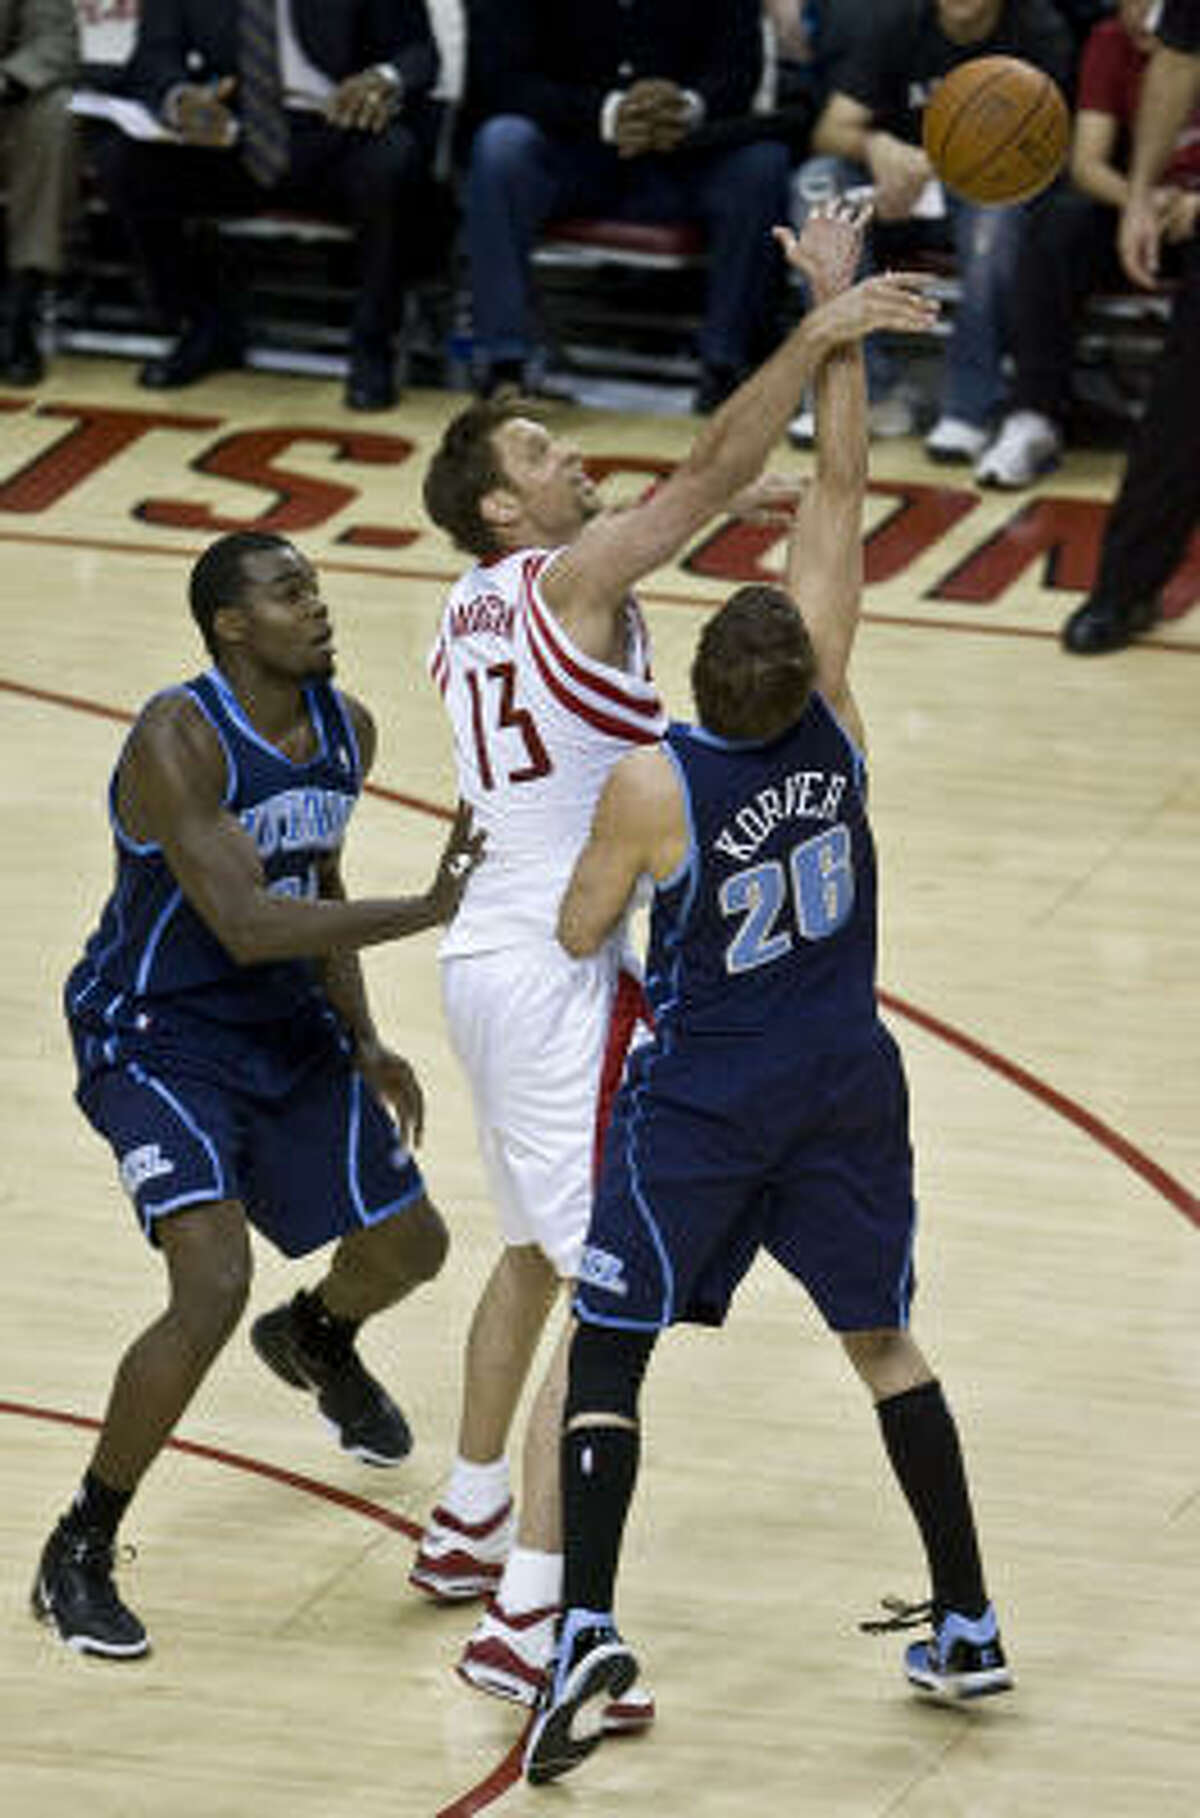 Rockets backup center David Andersen sank two 3-pointers a minute apart to give the Rockets a 93-90 lead late in the fourth quarter. Andersen finished with 18 points in the 104-95 loss to Utah.